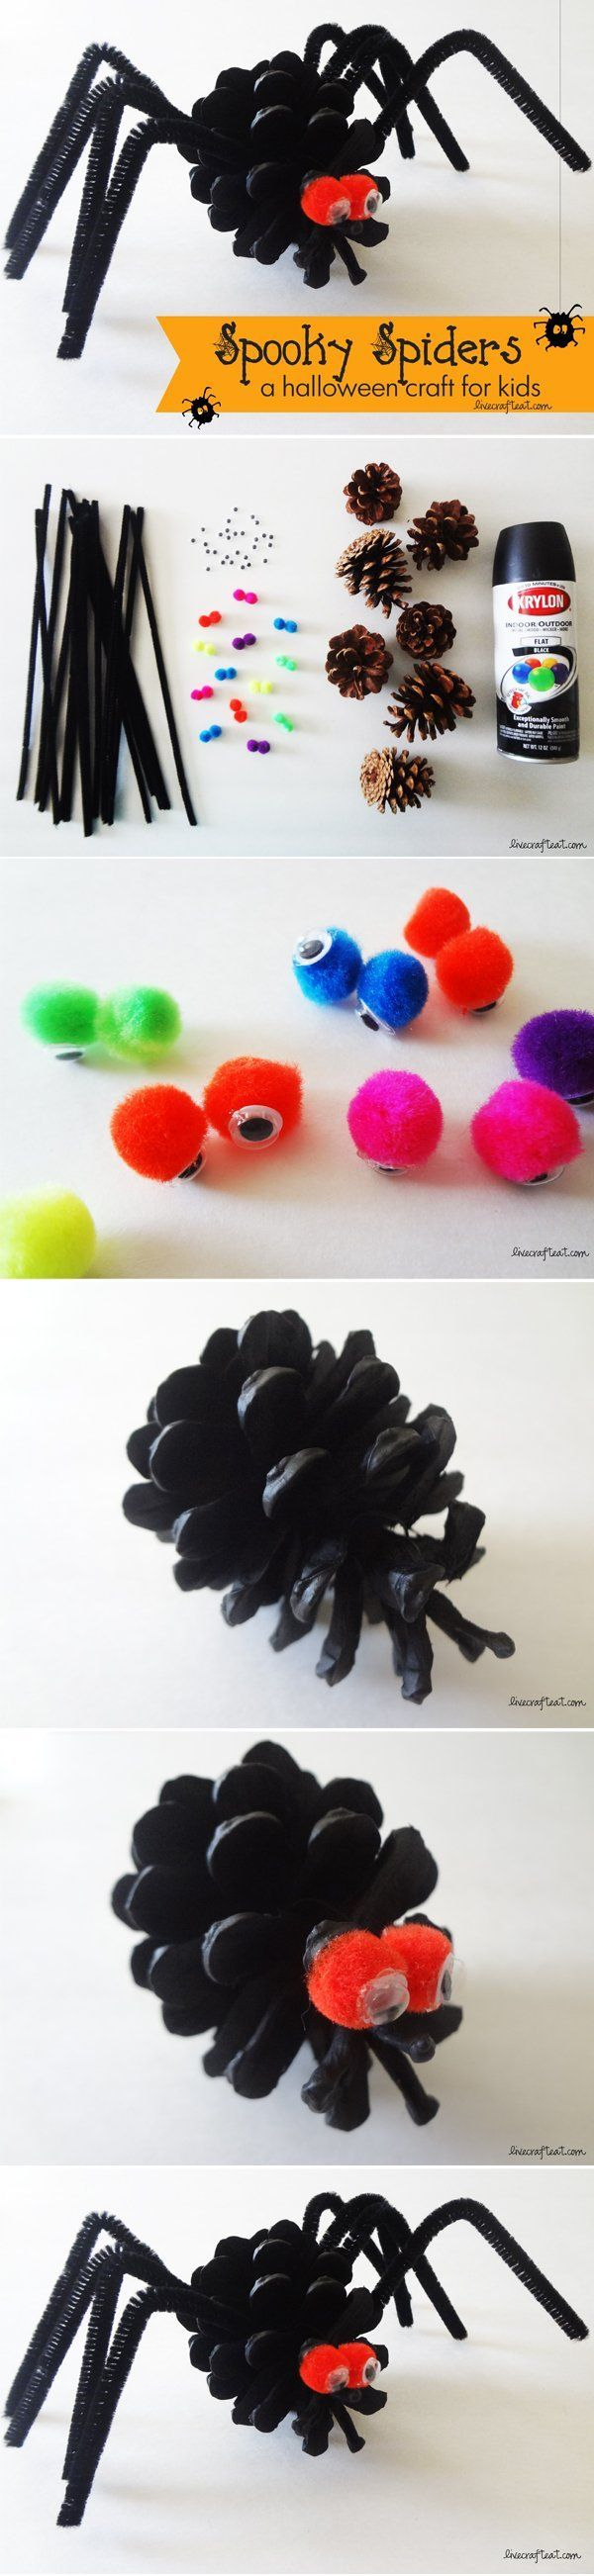 an easy halloween spider craft for kids - uses only a few inexpensive craft supplies that you probably already have on hand. so cute for decorating your house/front door! | www.livecrafteat.com